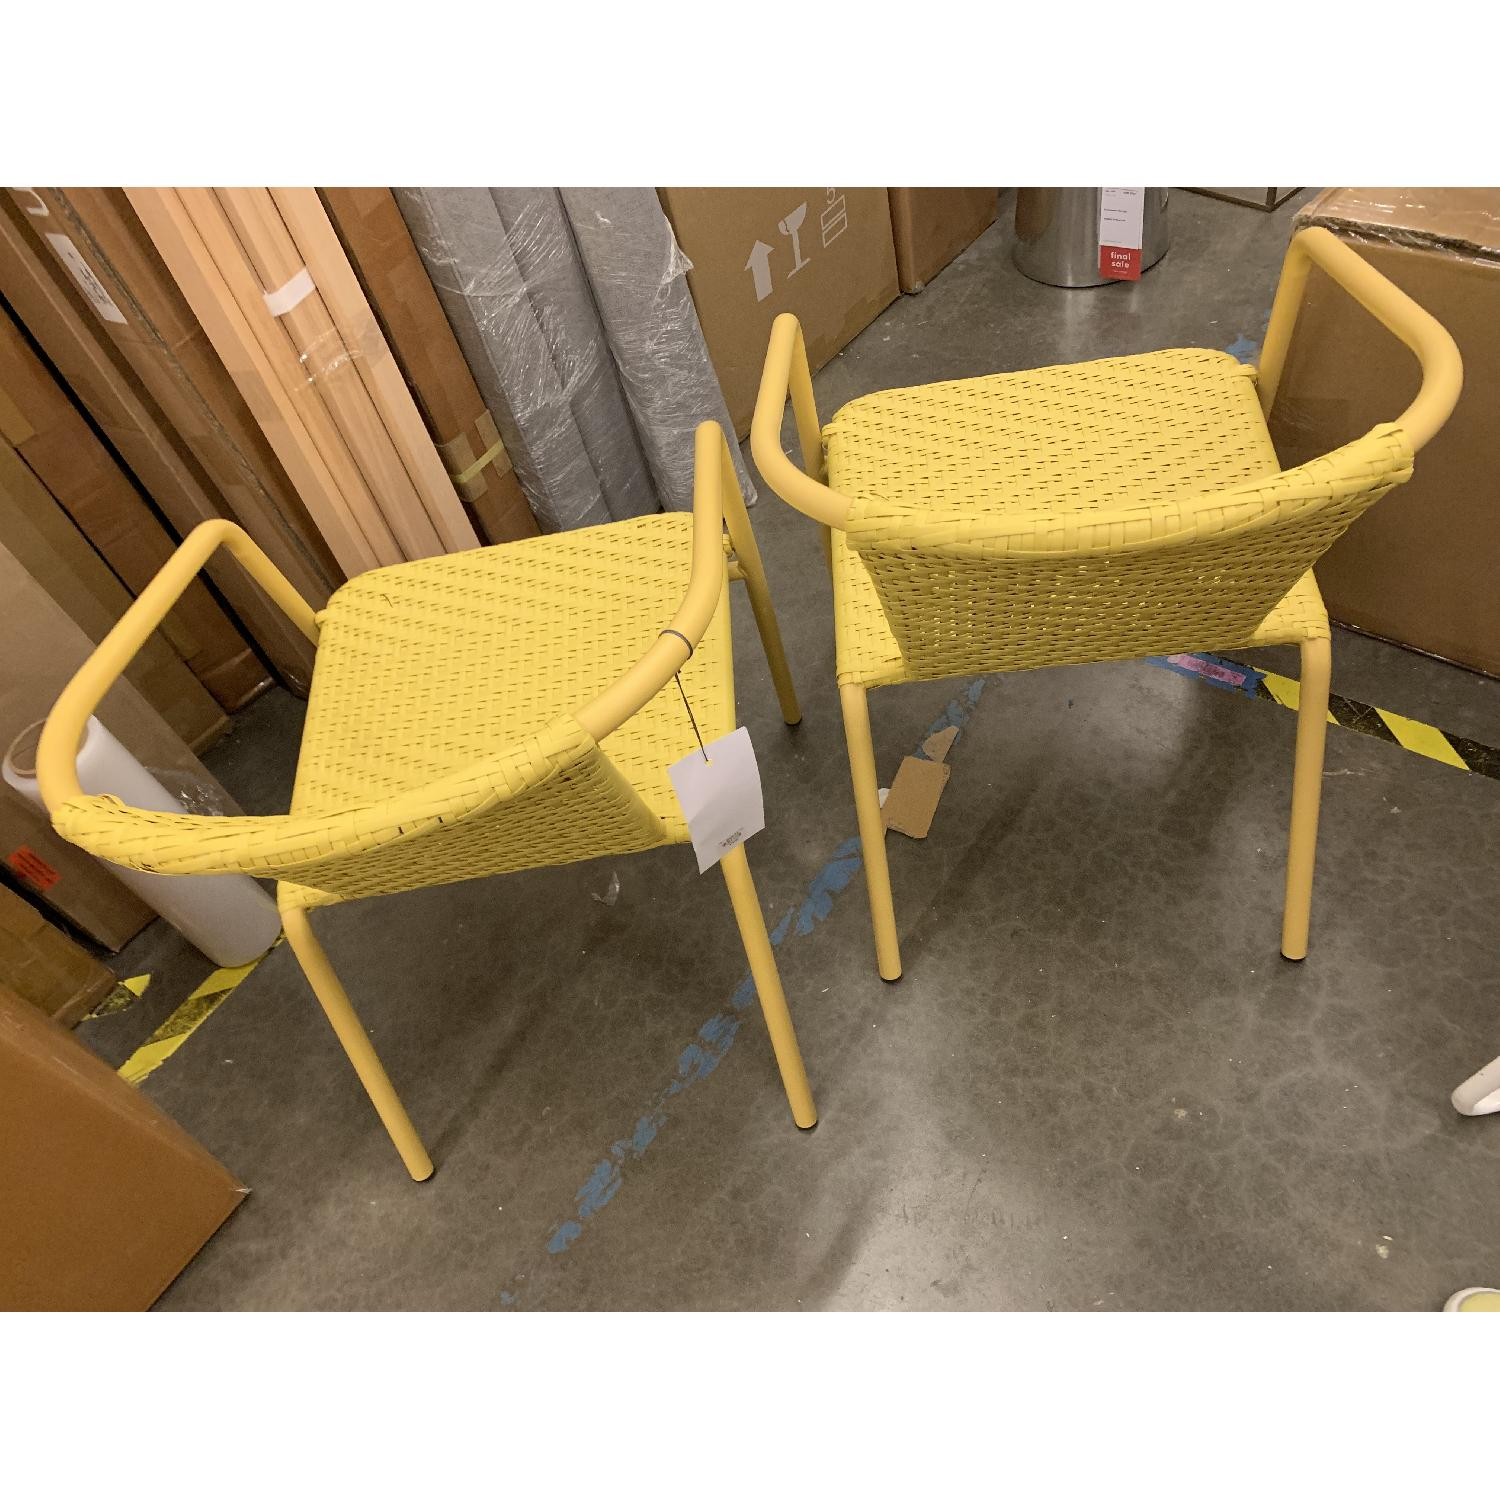 West Elm Woven Outdoor Stacking Chairs - image-4